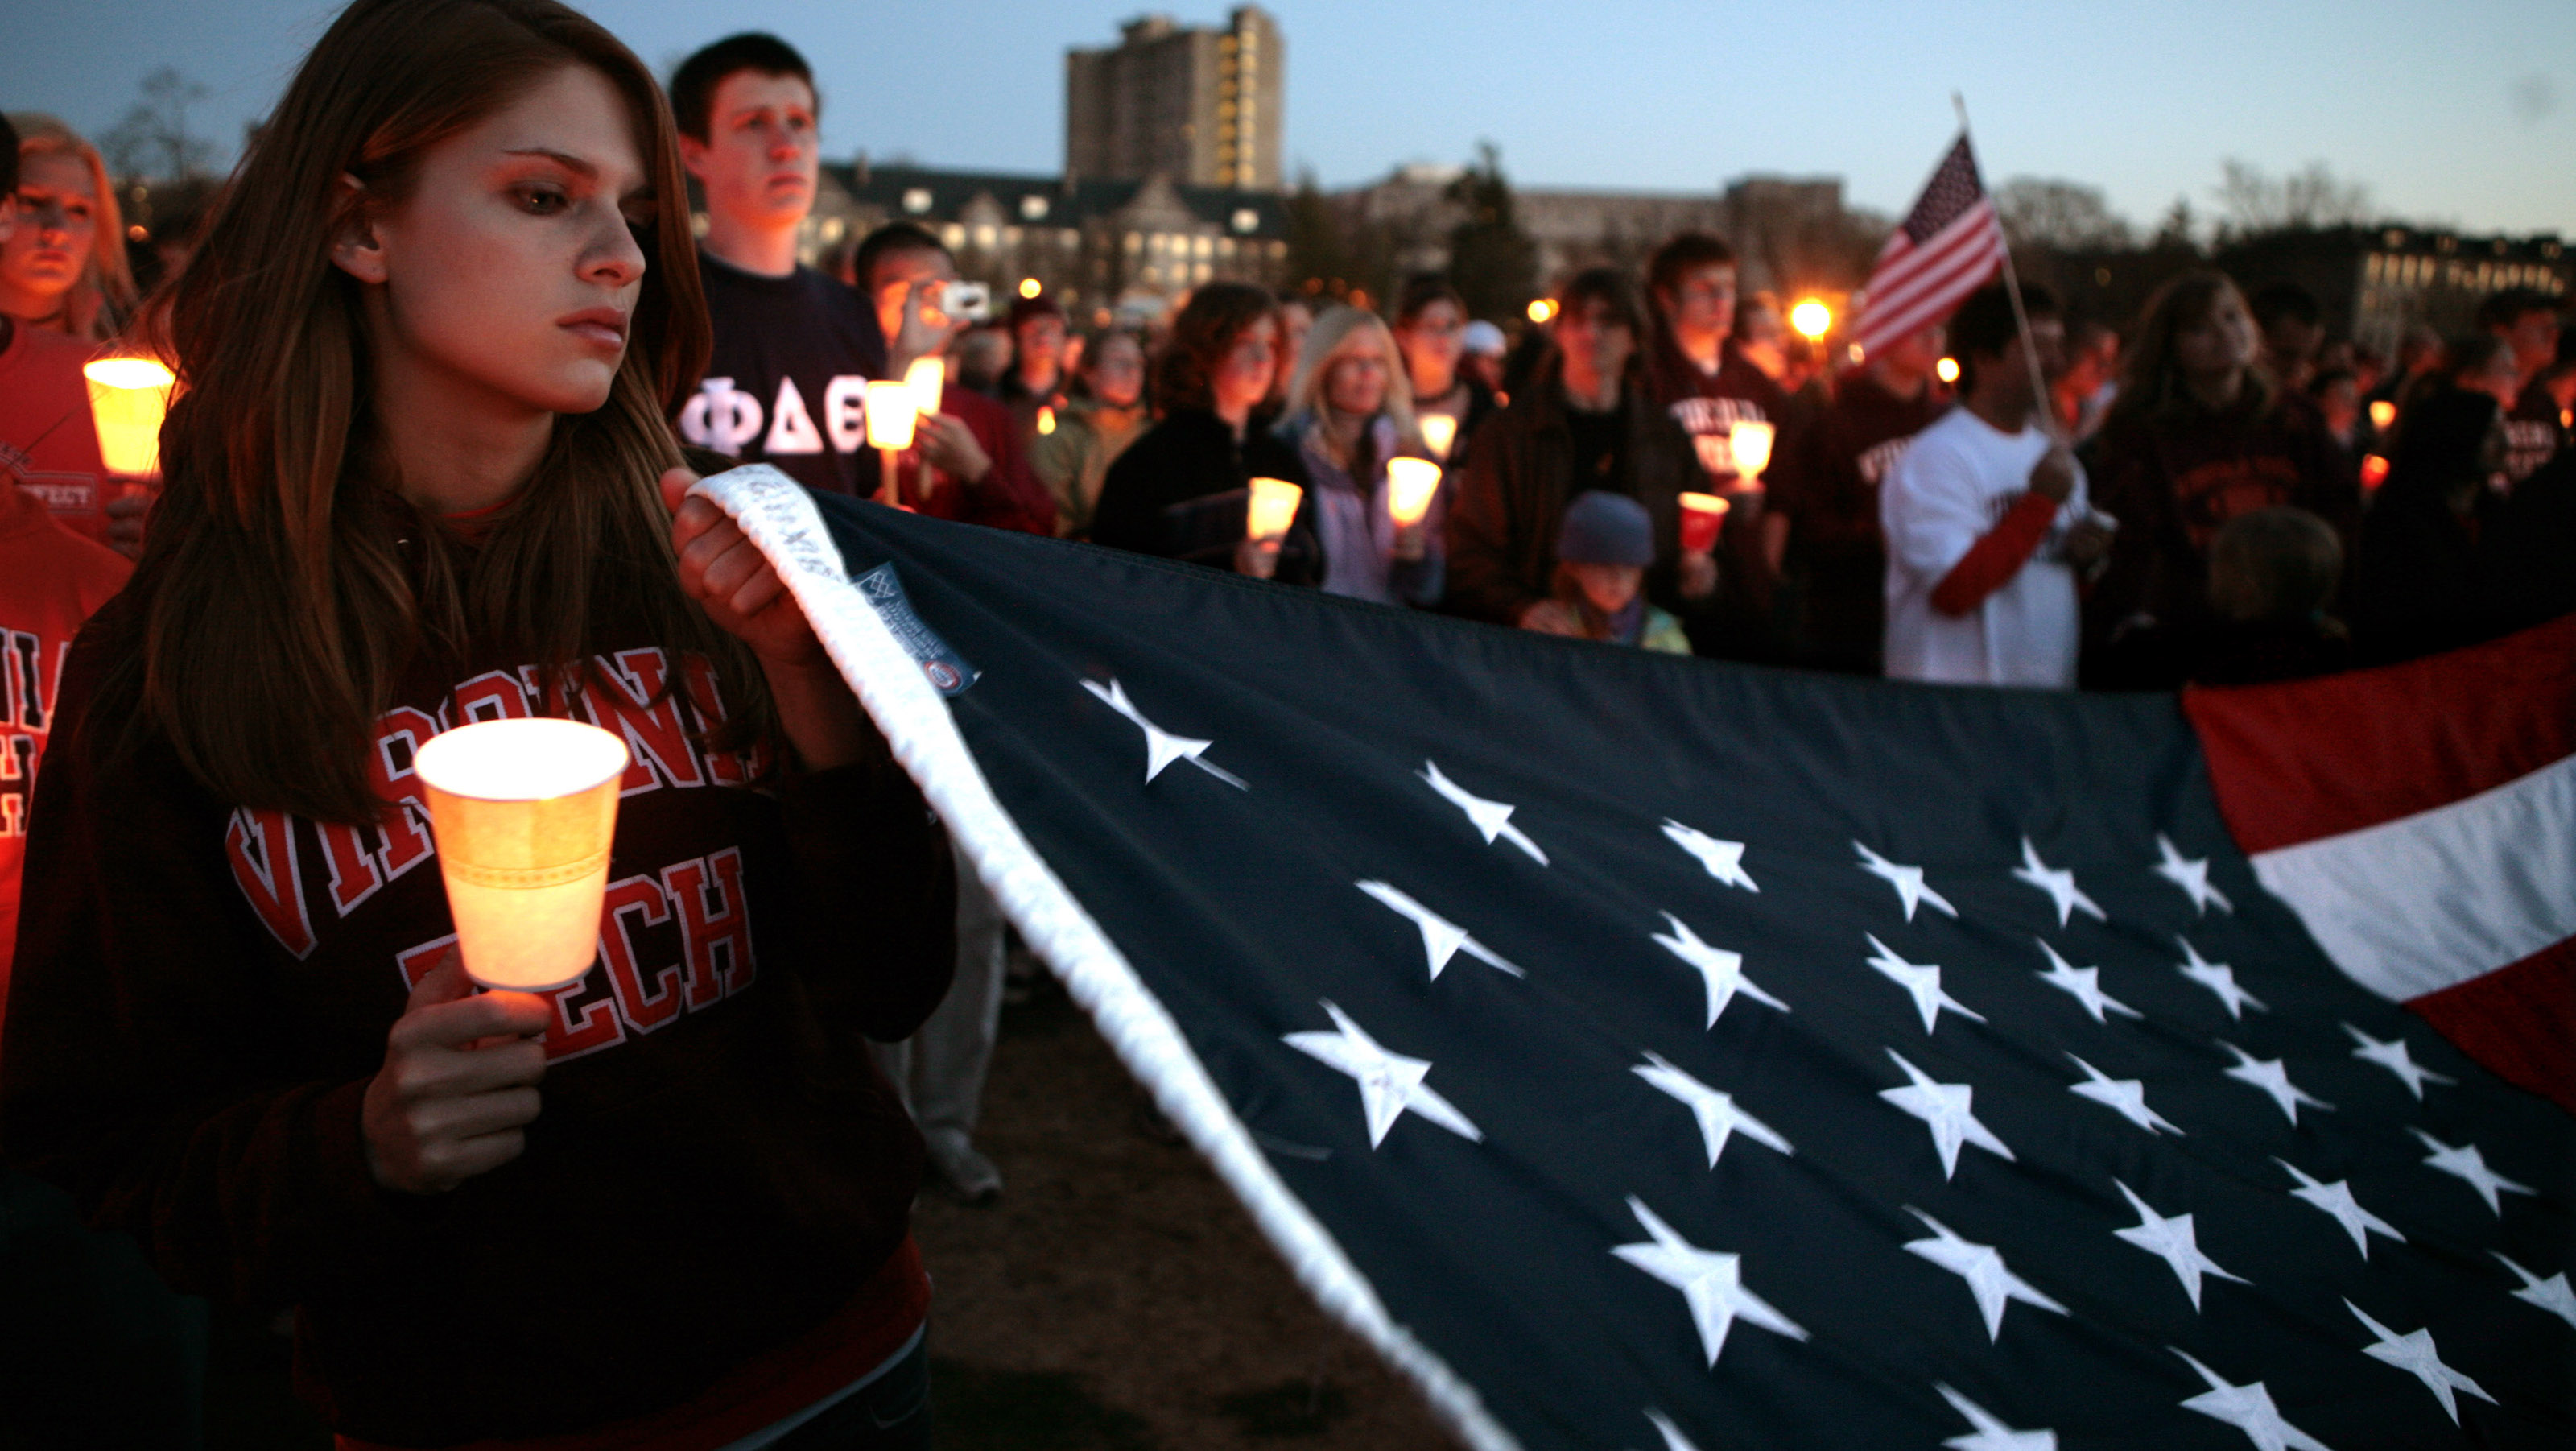 A student holds a corner of the American flag during a candlelight  vigil a day after the killings at Virginia Tech in  Blacksburg, Virginia, April 17, 2007.  Virginia Tech senior Cho Seung-Hui killed 32 people on Monday at Virginia Tech University after opening fire on students and staff in an apparently premeditated massacre on Monday morning, leaving the sprawling rural campus reeling with grief and shock.   REUTERS/Kevin Lamarque  (UNITED STATES) - RTR1OQW2